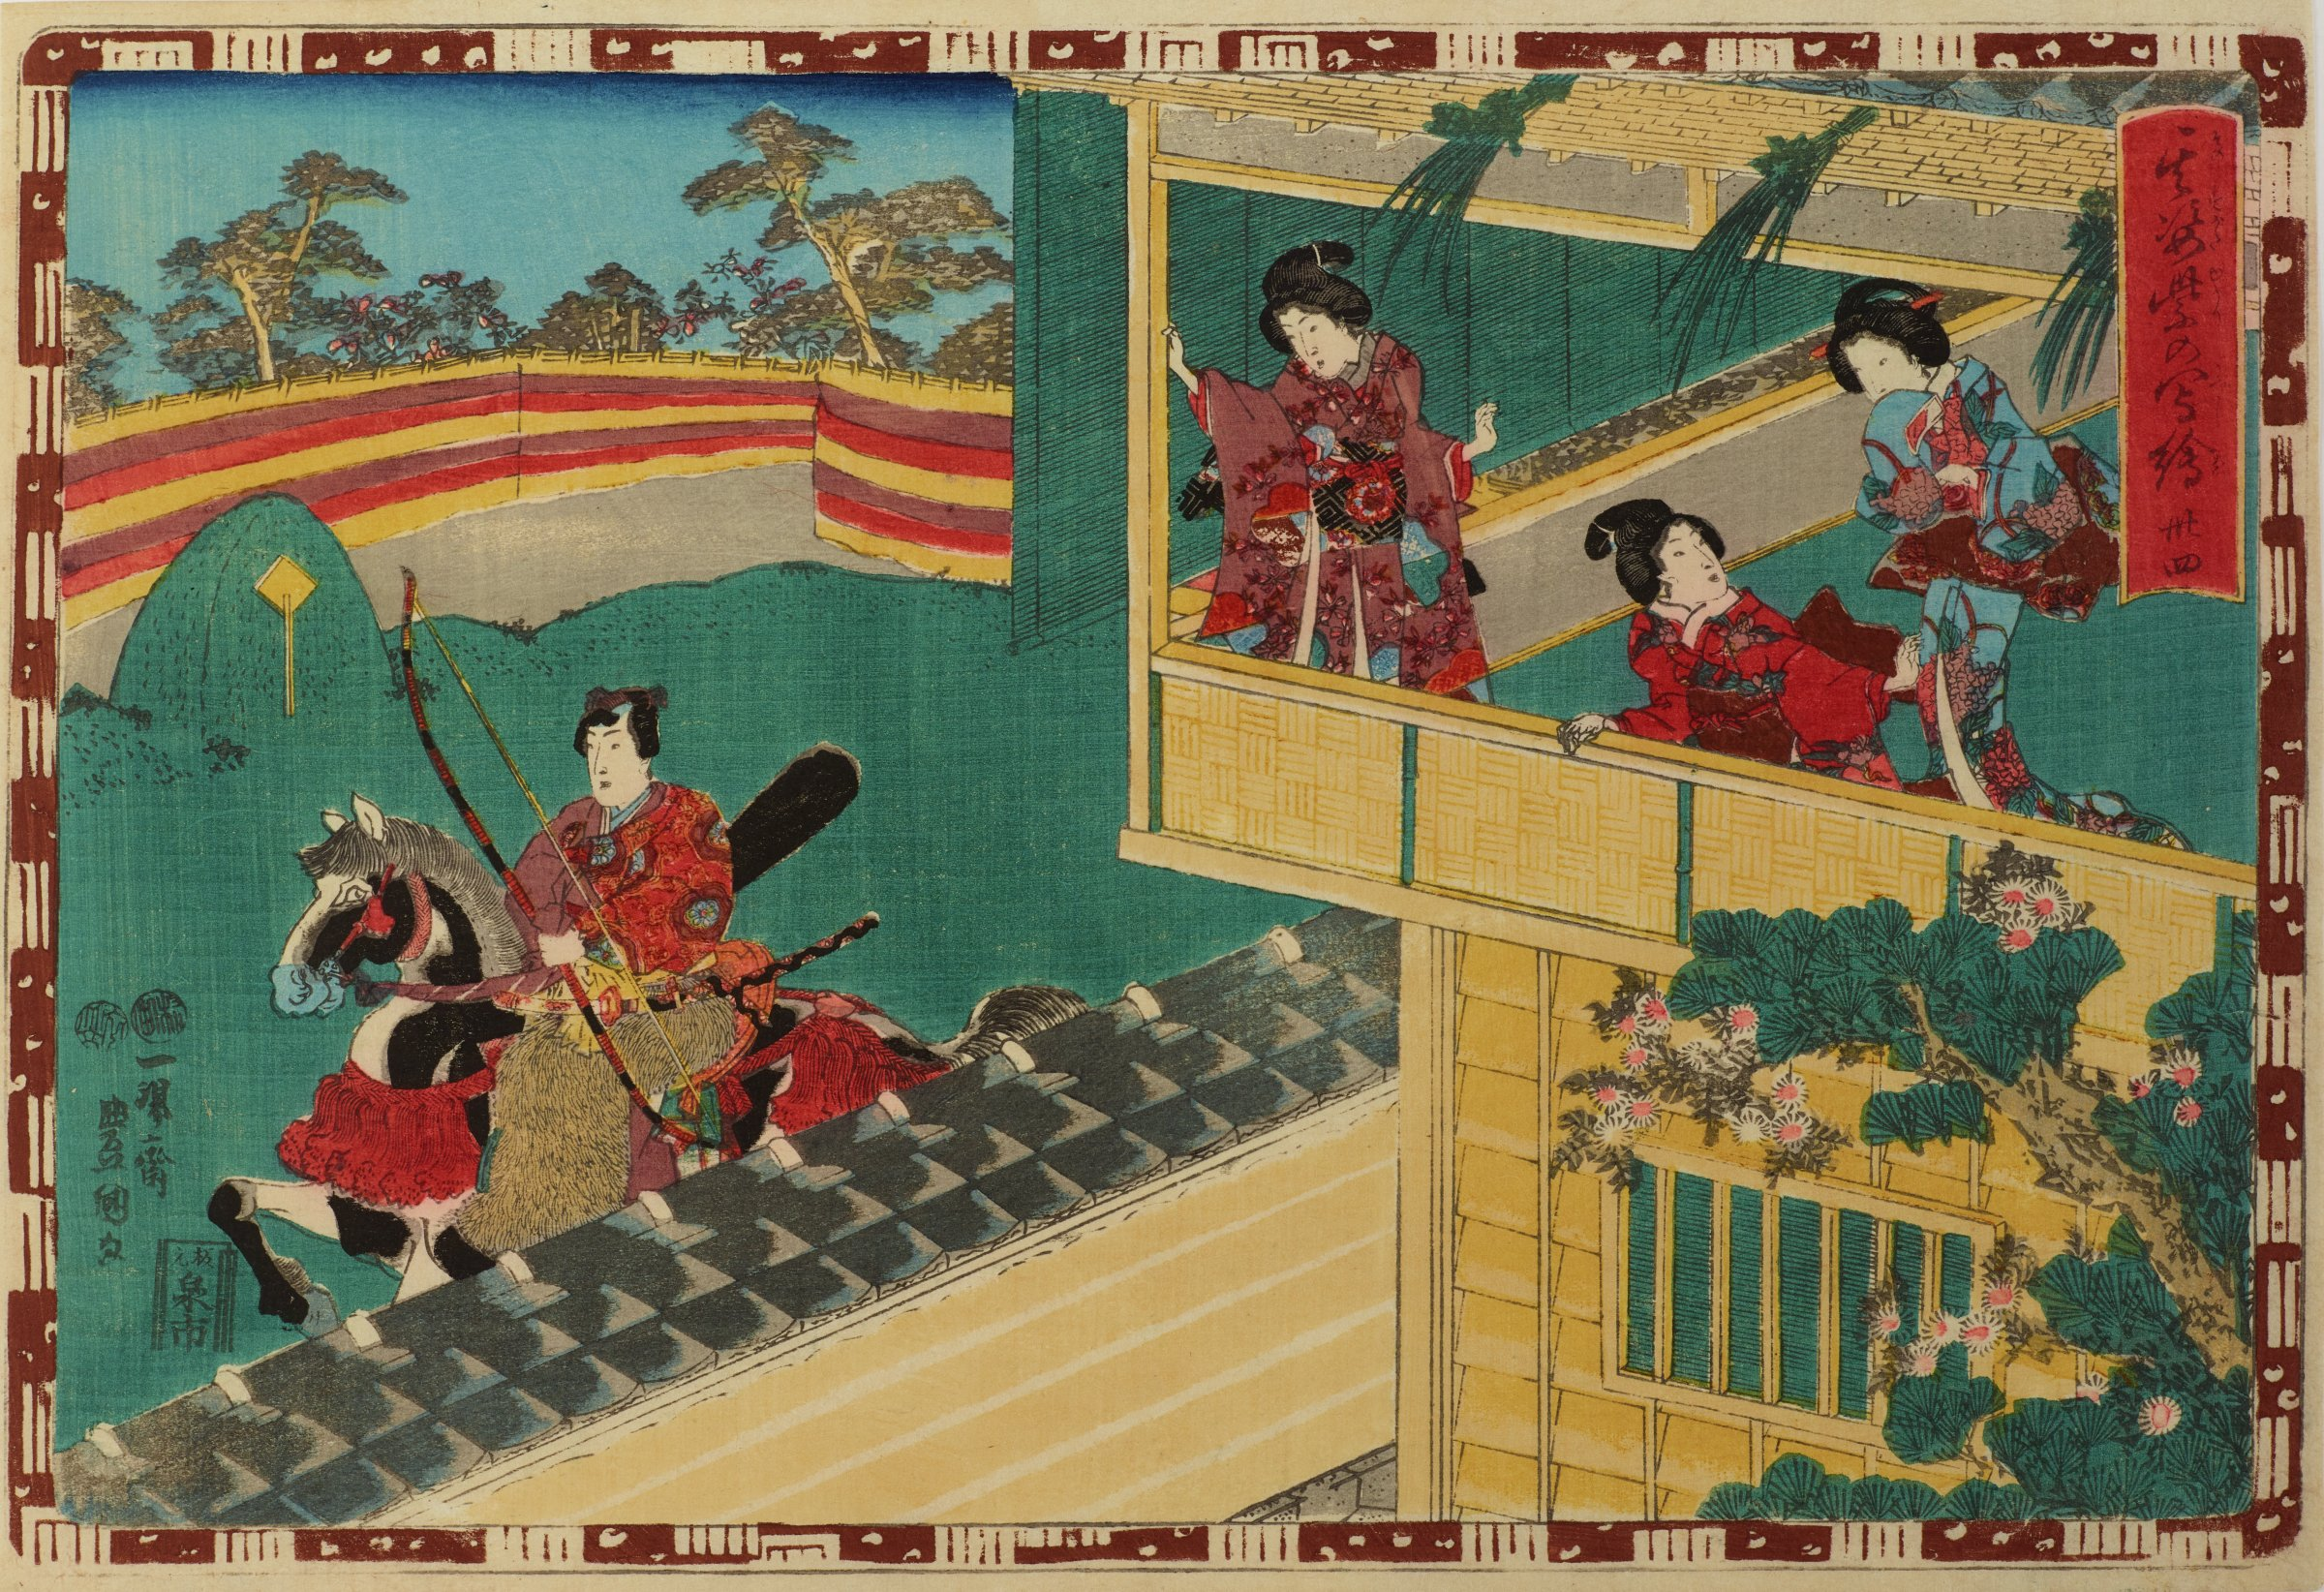 Chapter 34 (Spring Shoots I), from the series of Faithful Depiction of That Purple Figure, Utagawa Kunisada, ink and color on paper